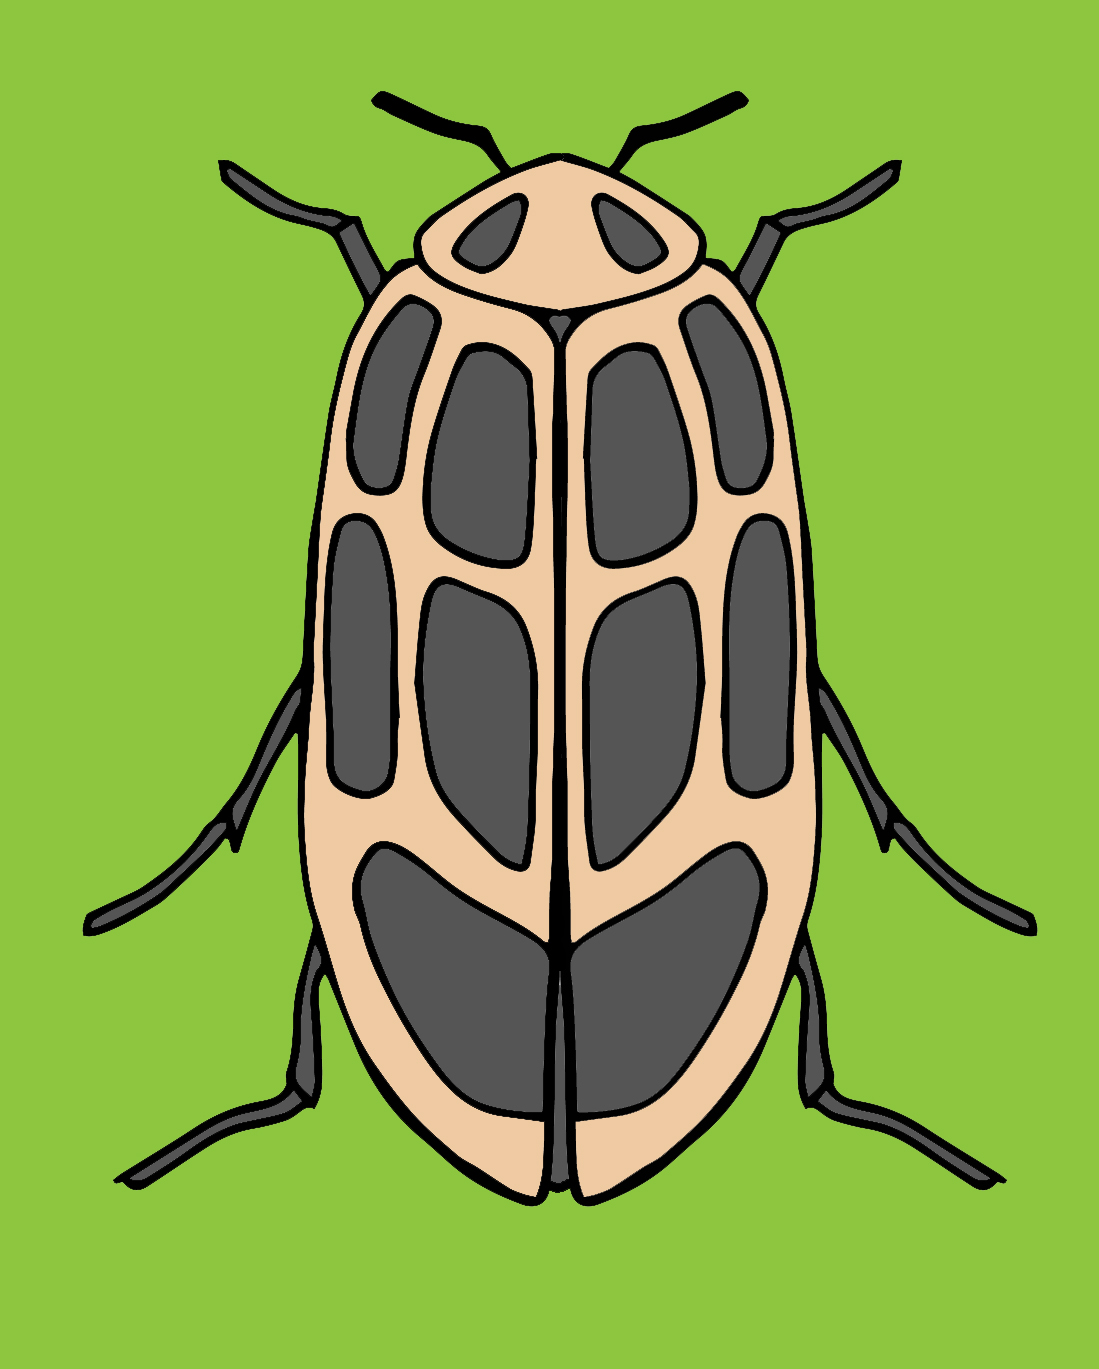 082719 Coleoptera color 1.jpg